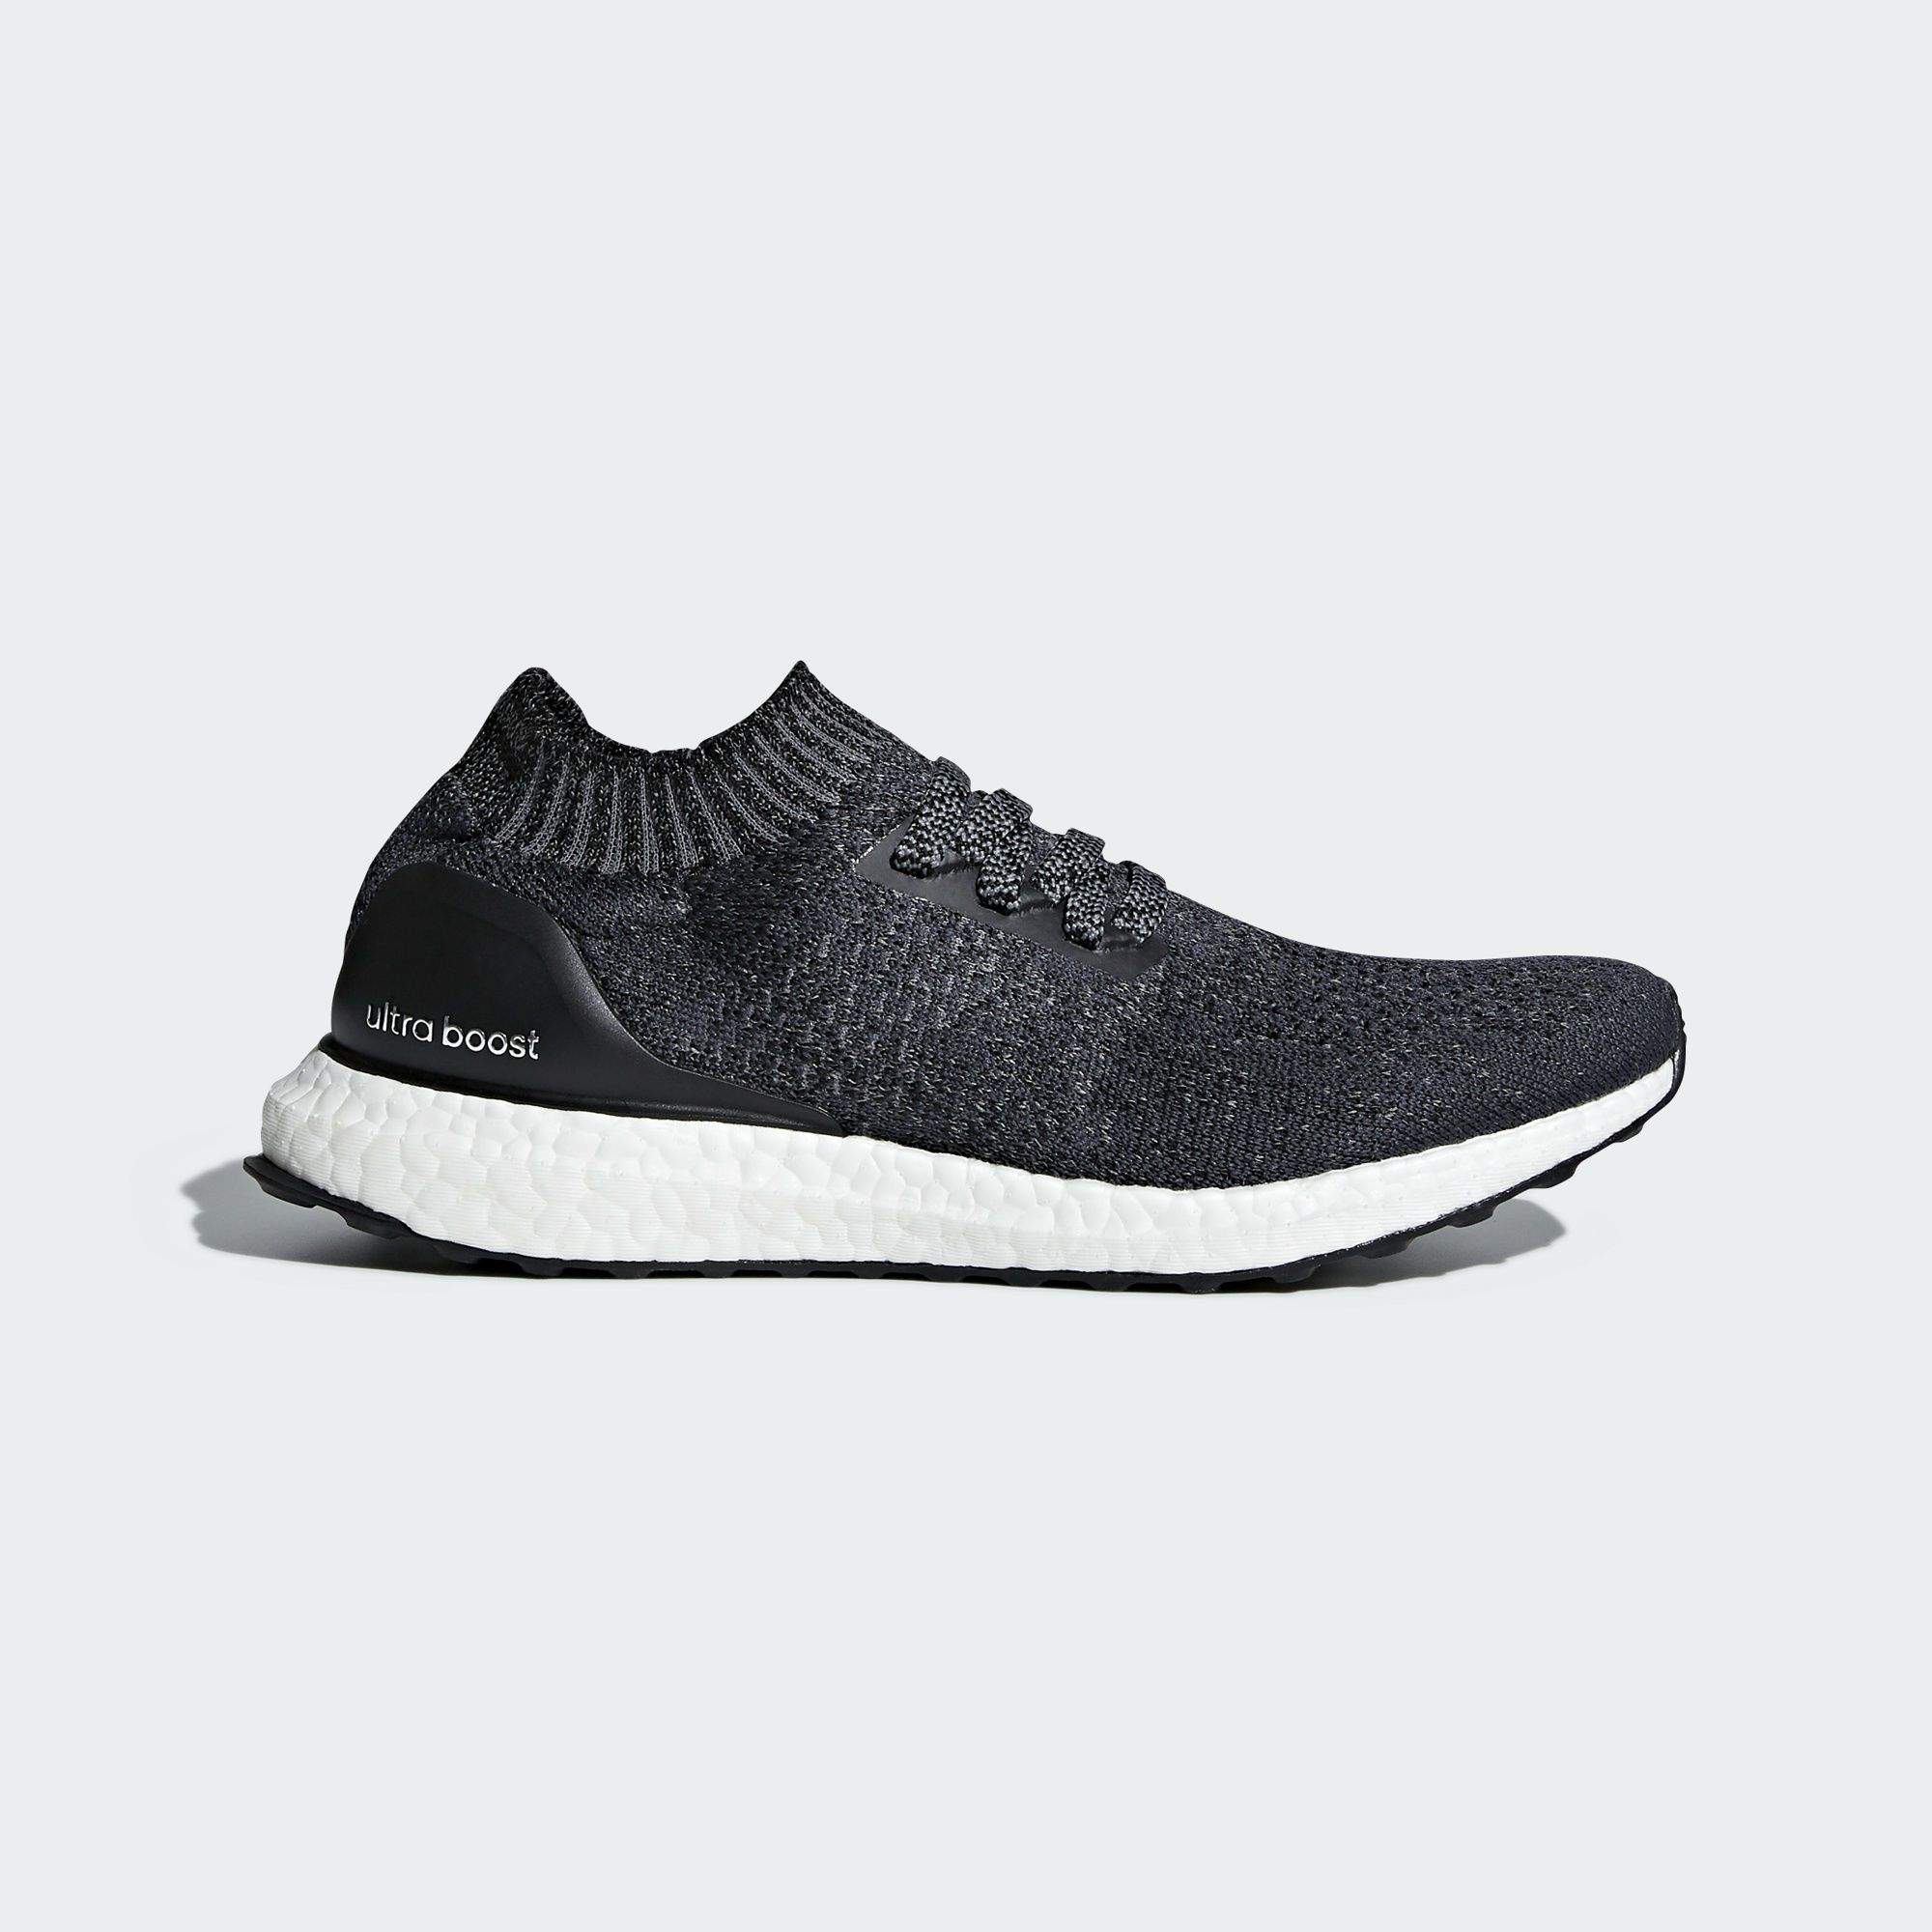 e6baf59b33c3 Shop the Ultraboost Uncaged Shoes - Grey at adidas.com us! See all the  styles and colors of Ultraboost Uncaged Shoes - Grey at the official adidas  online ...